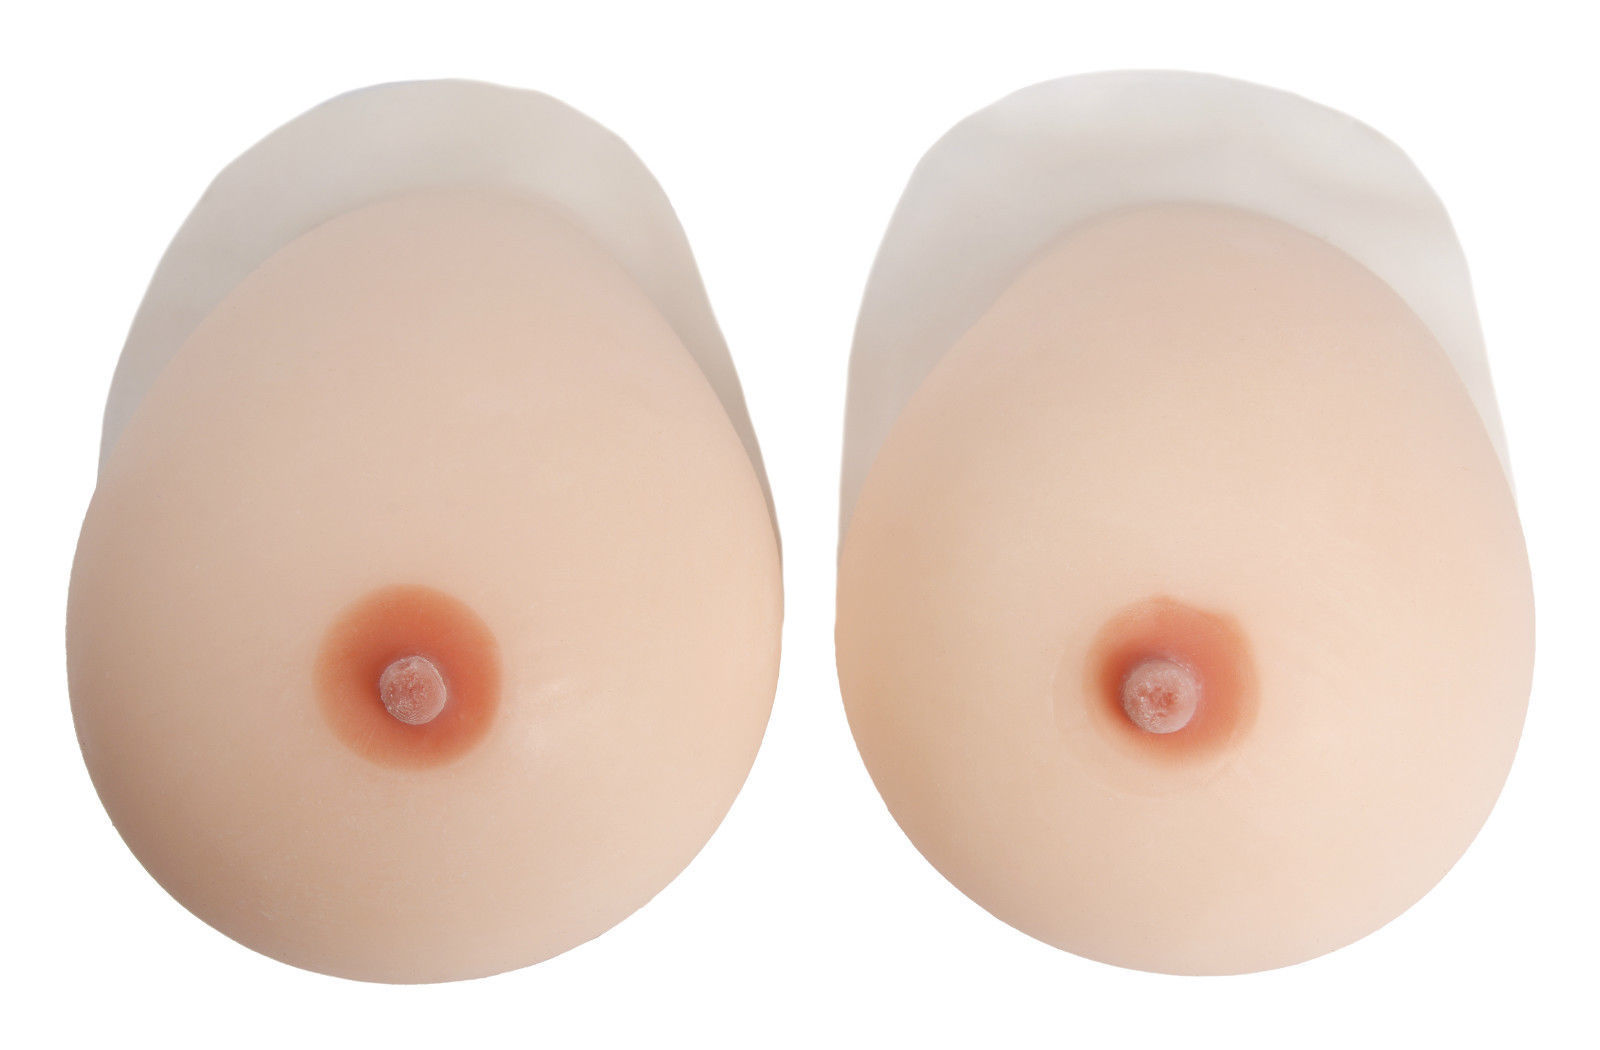 Primary image for Isabella Real Tear Drop Silicone Breast Form Cross dresser Sz 13(7XL)